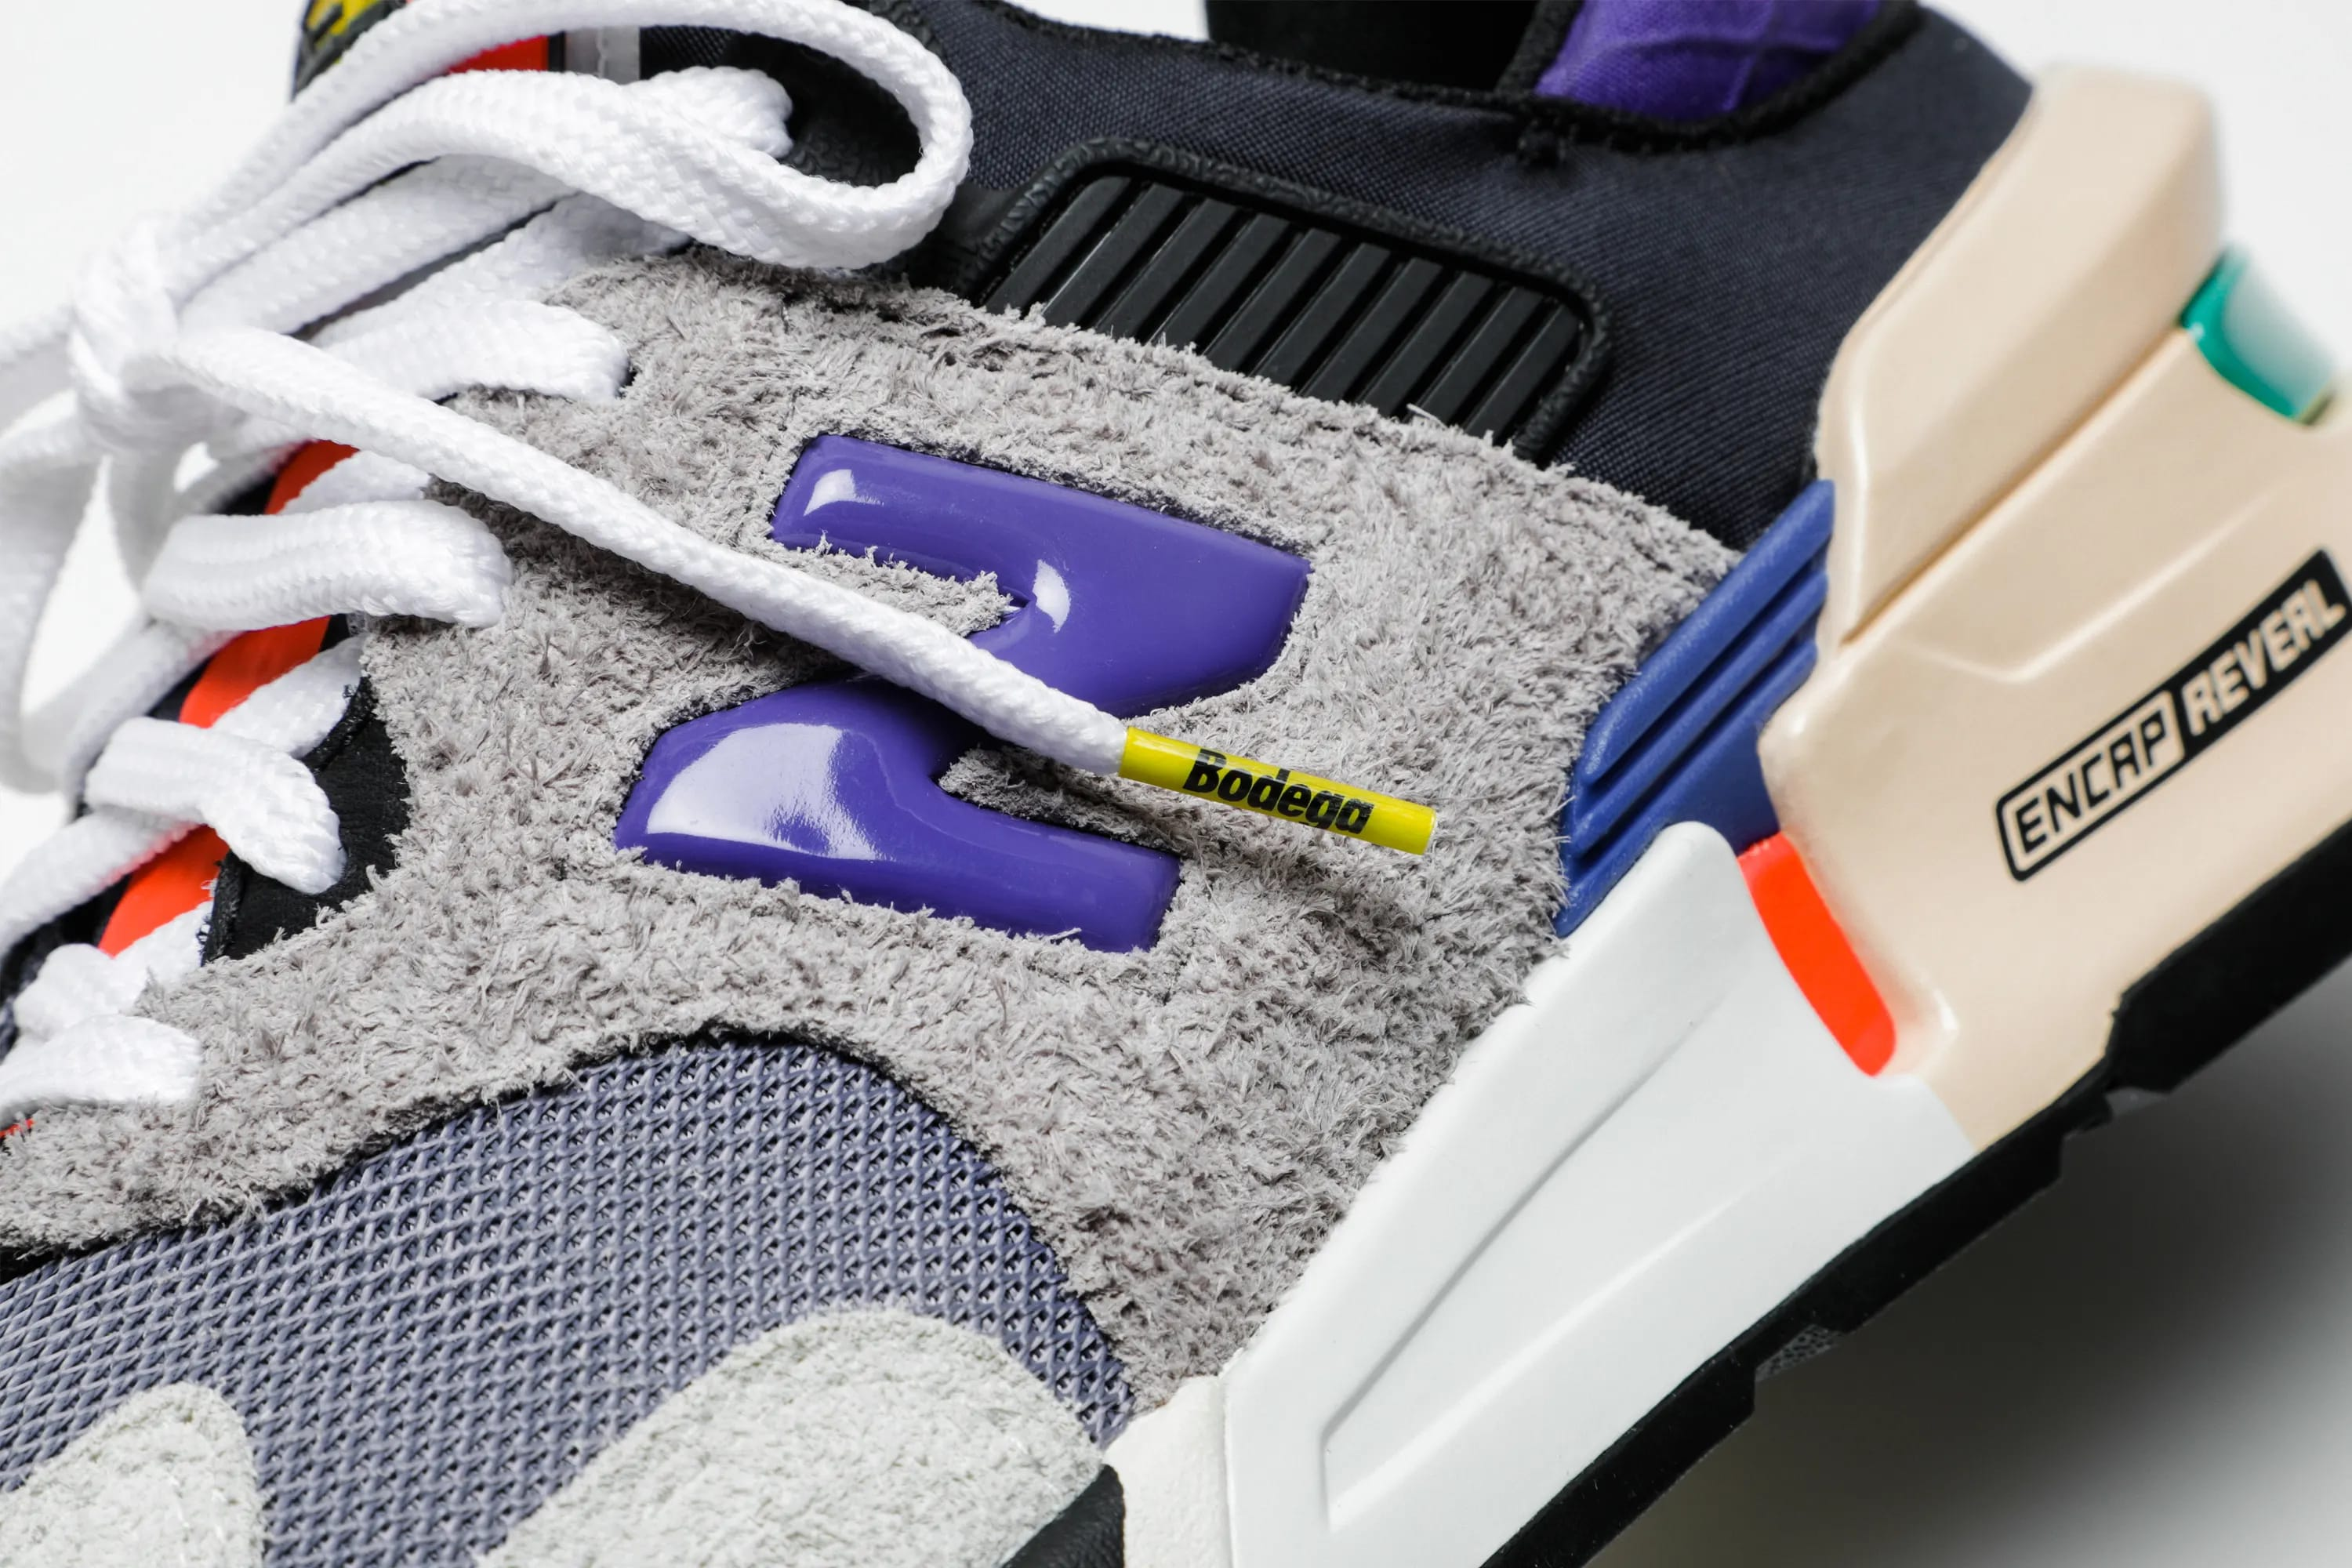 37c754a4f99 Bodega x New Balance 997S 'No Days Off' Release Date | Sole Collector